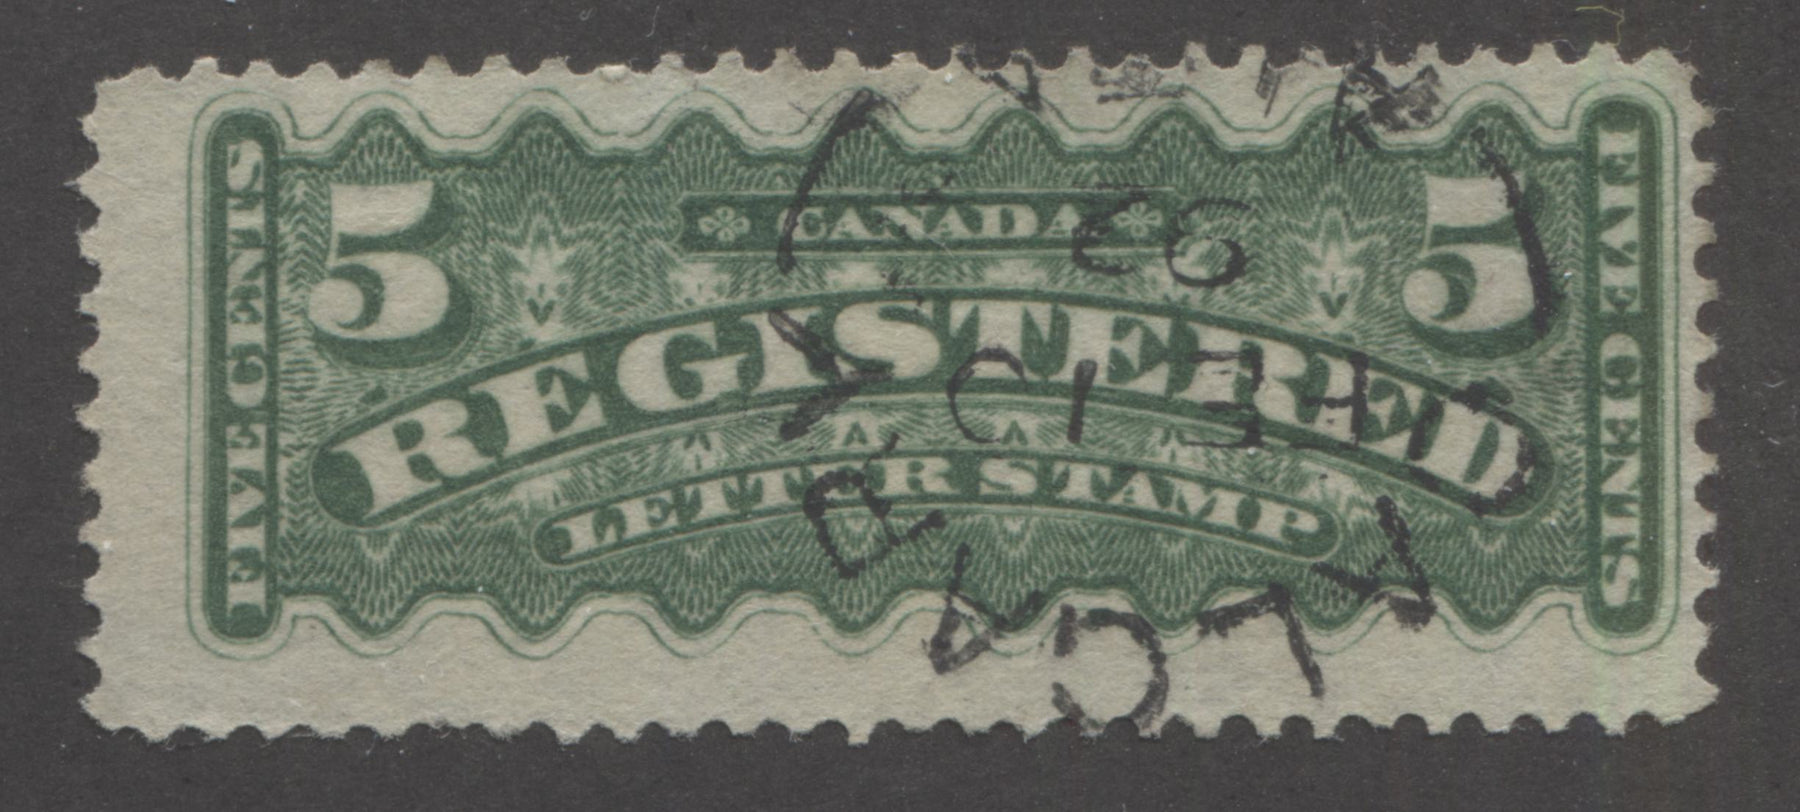 Canada #F2i 5c Green 1875-88 Registered Issue, A Fine Used Example of the Second Ottawa Printing, Perf. 12 on Soft Horizontal Wove Paper, With February 10, 1892 Calgary Split Ring CDS Cancel